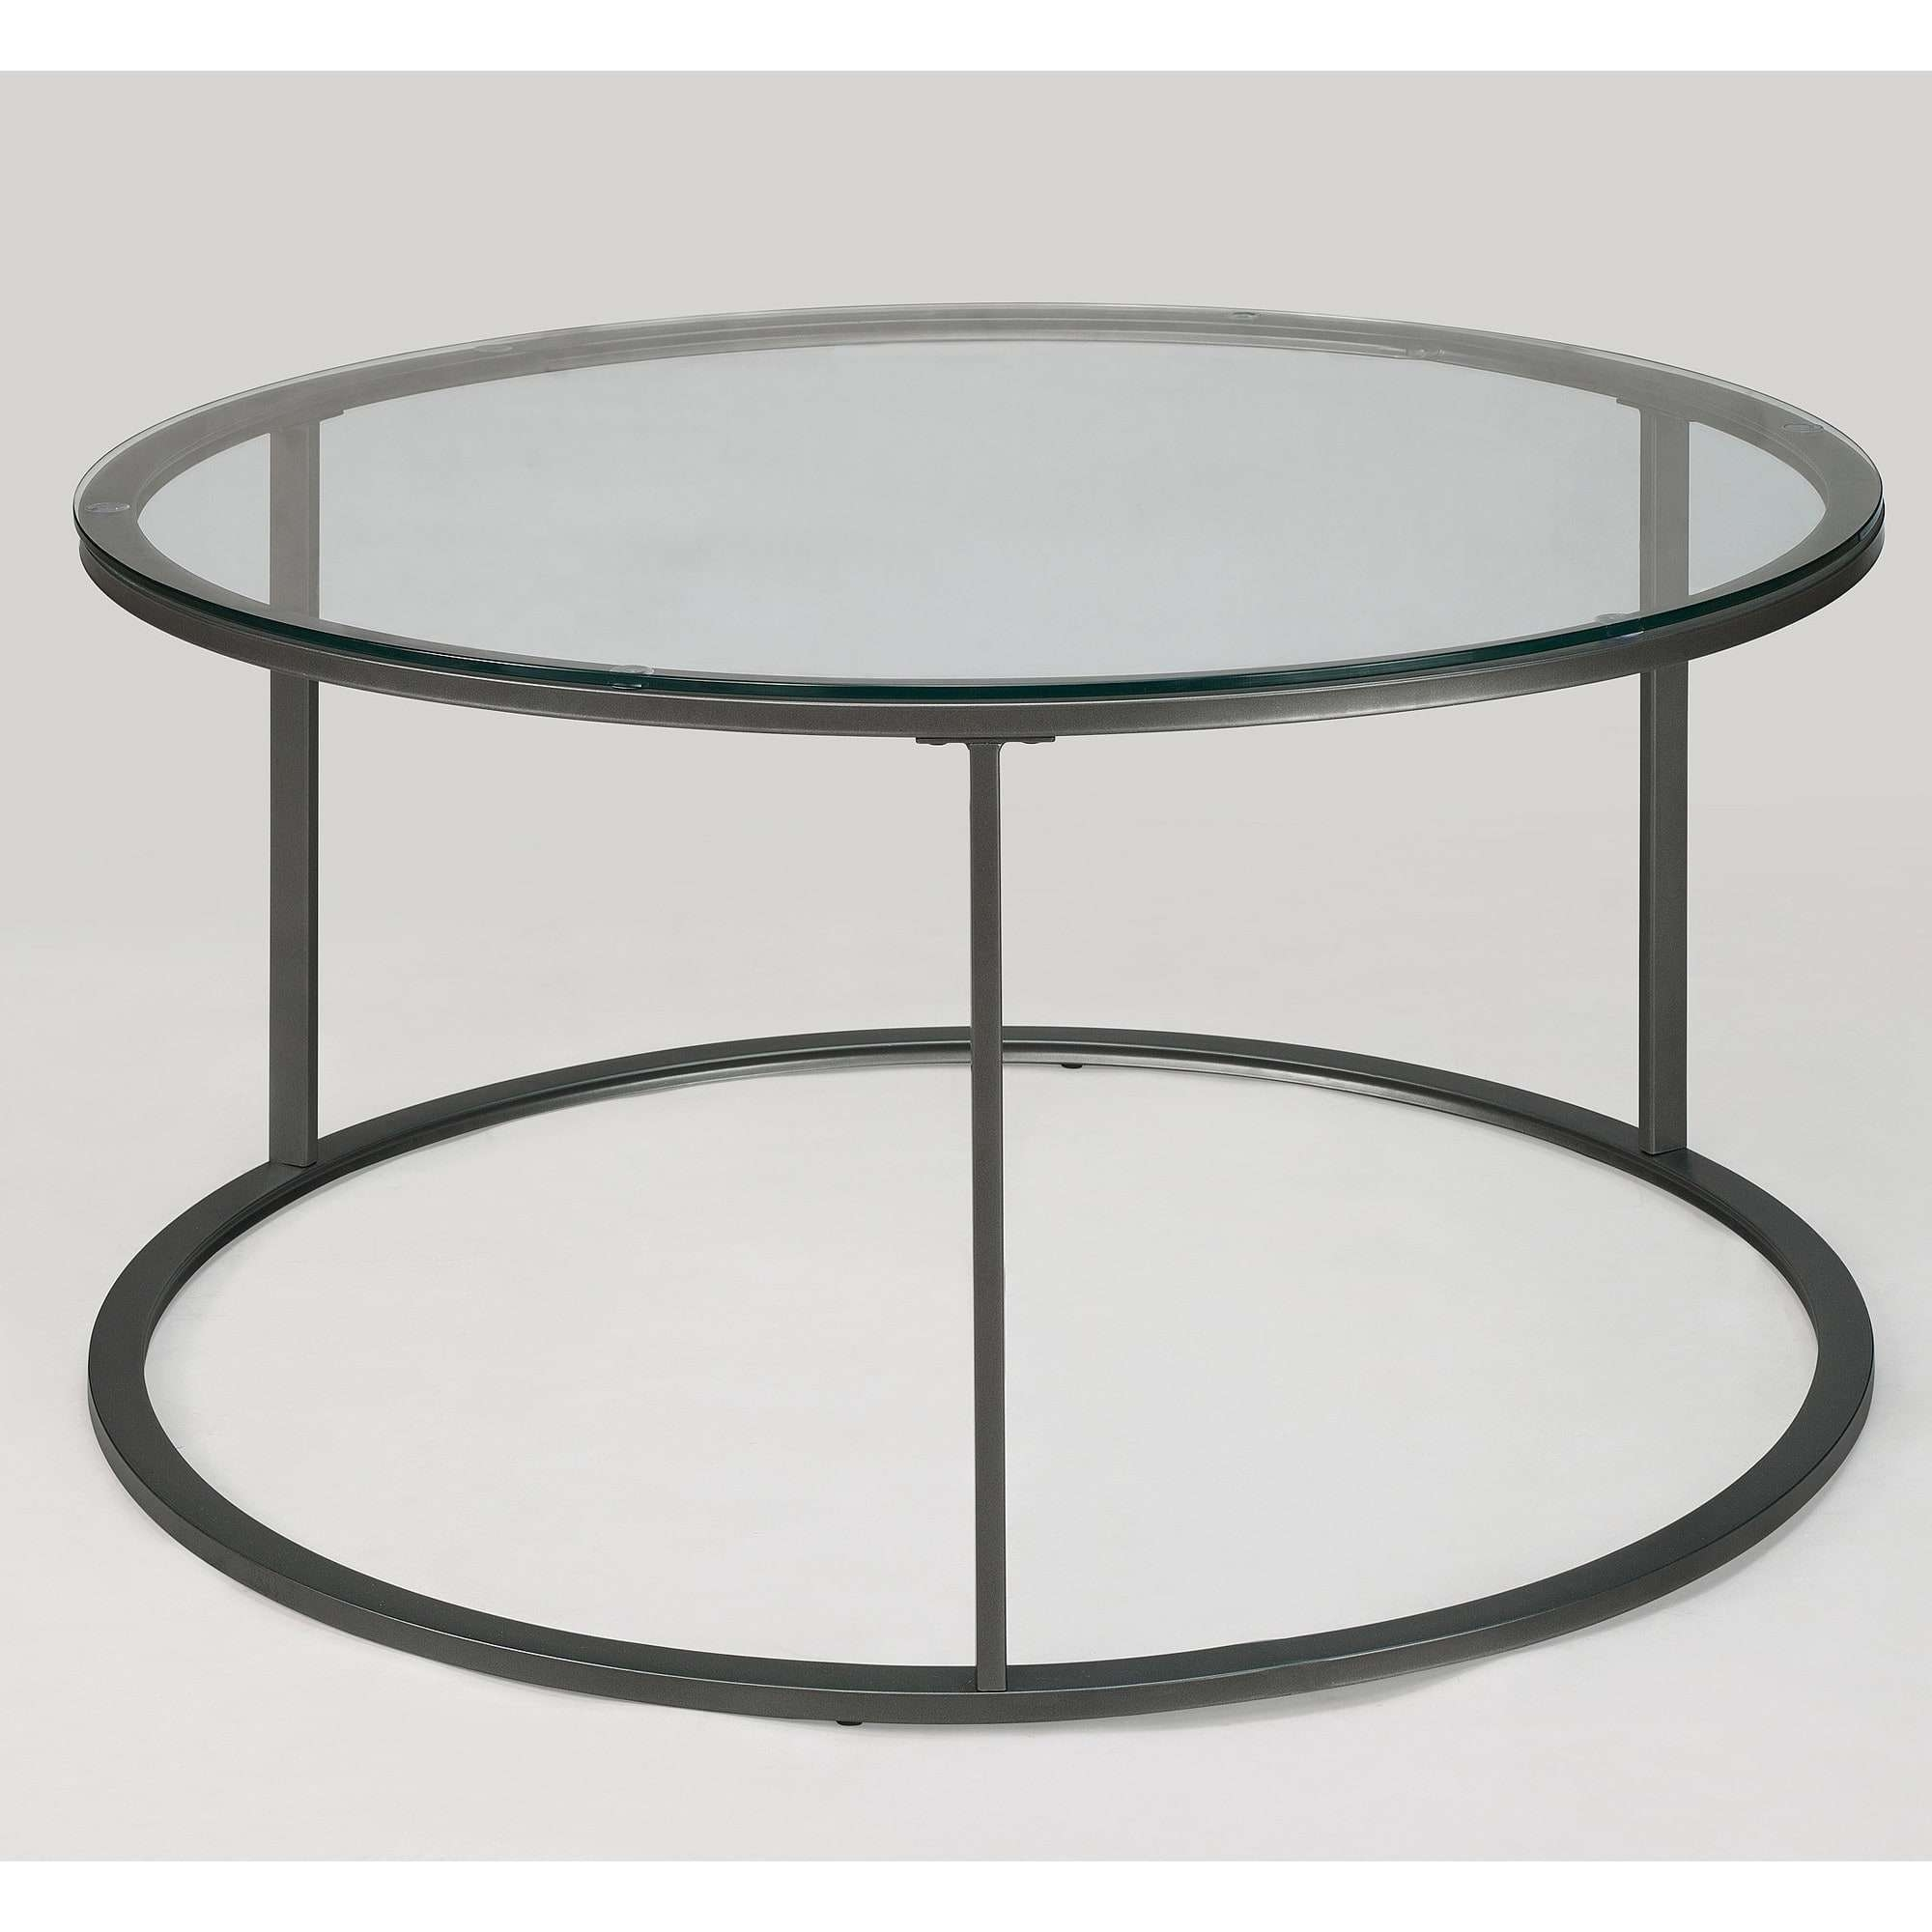 Round Glass Top Metal Coffee Table – Free Shipping Today With Most Recent Round Metal Coffee Tables (View 15 of 20)